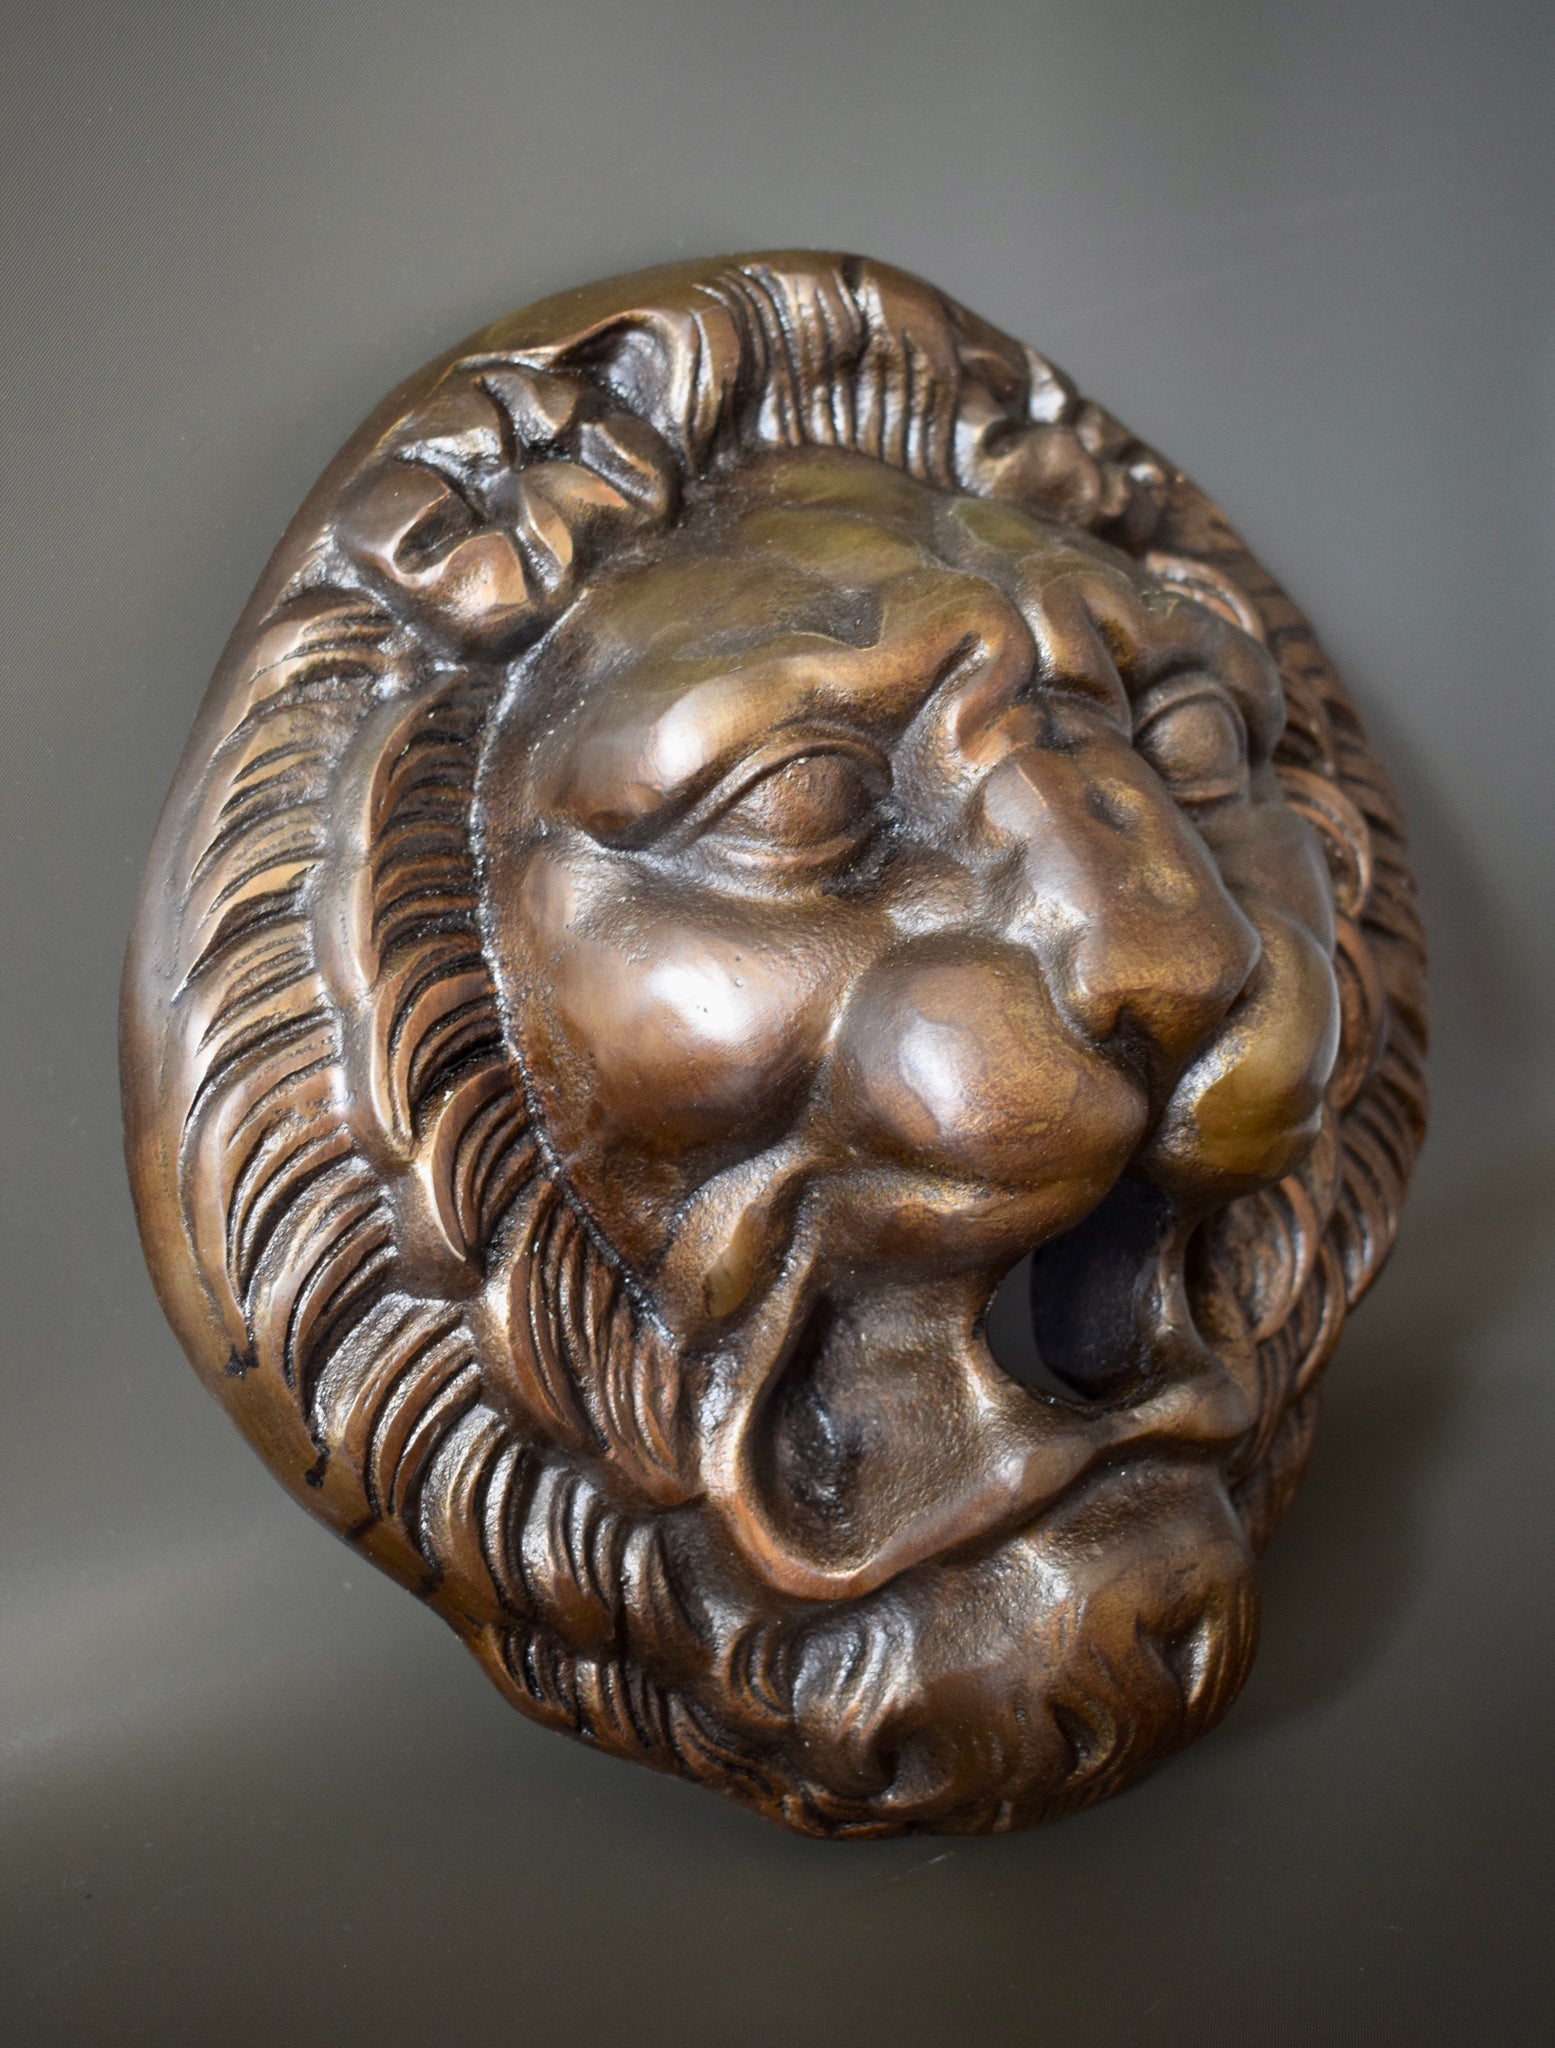 Lion Fountain Spout - Charmantiques